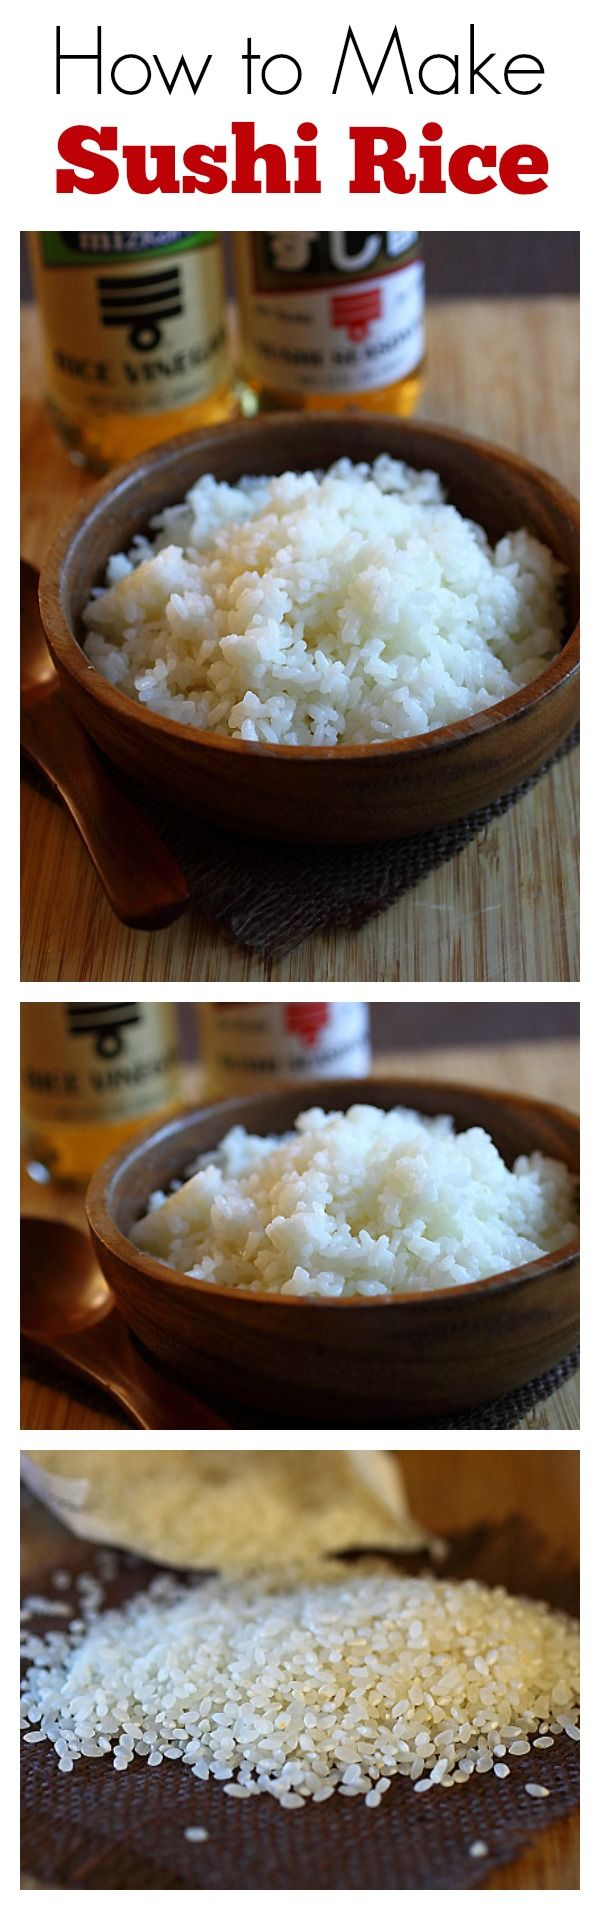 How to make sushi rice? The easiest and no-fuss recipe to make sushi rice from scratch be-jewel.com